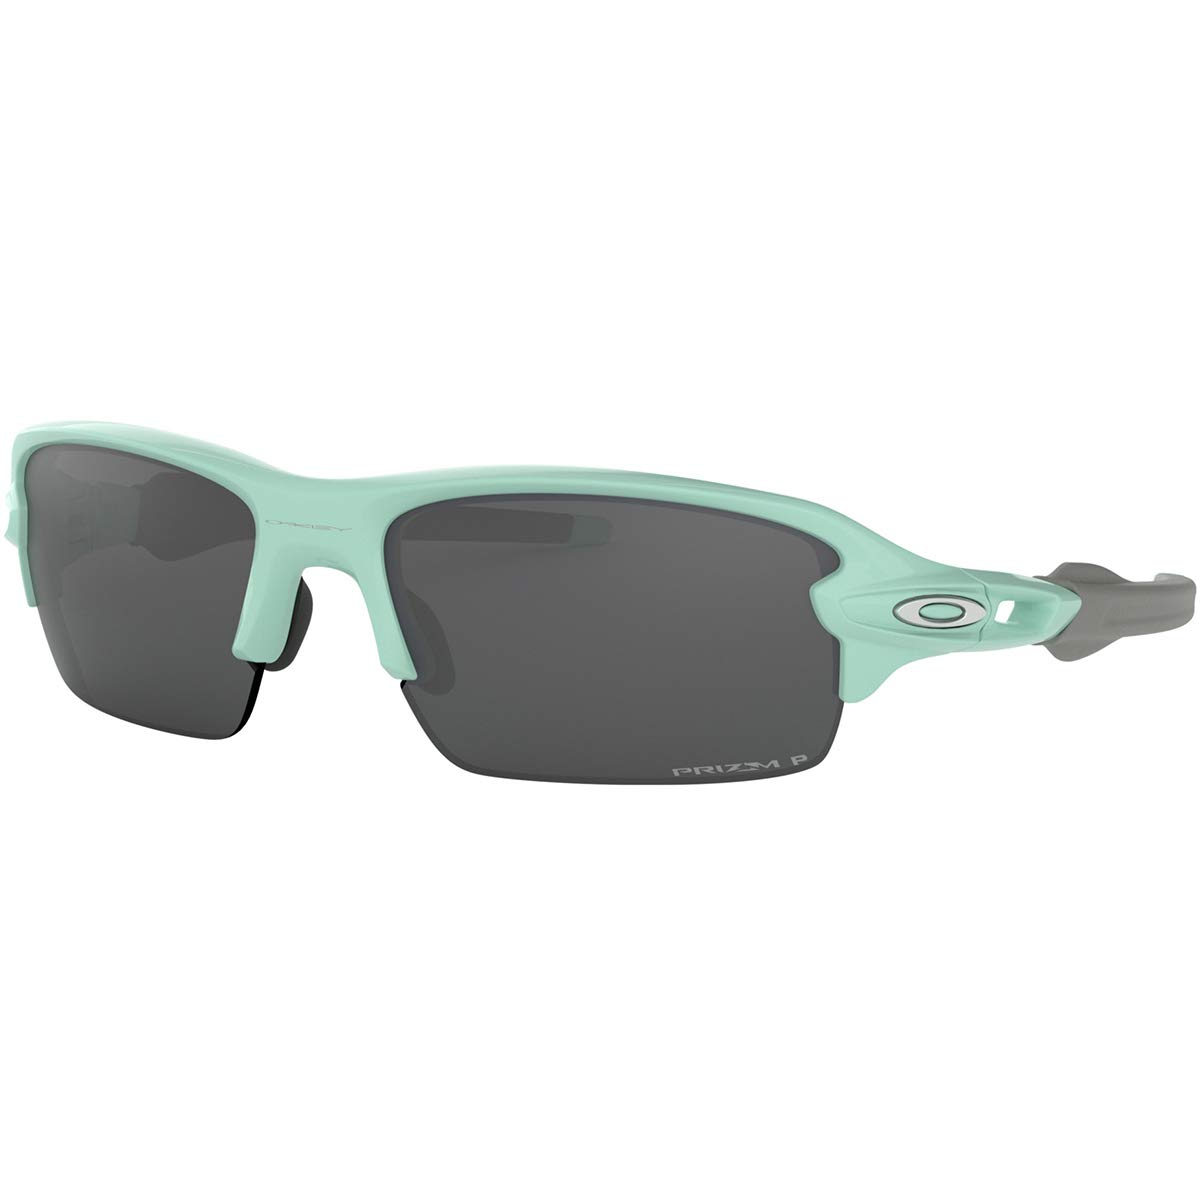 Oakley Men's Flak XS Sunglasses,OS,Arctic Surf/Prizm Black Polarized